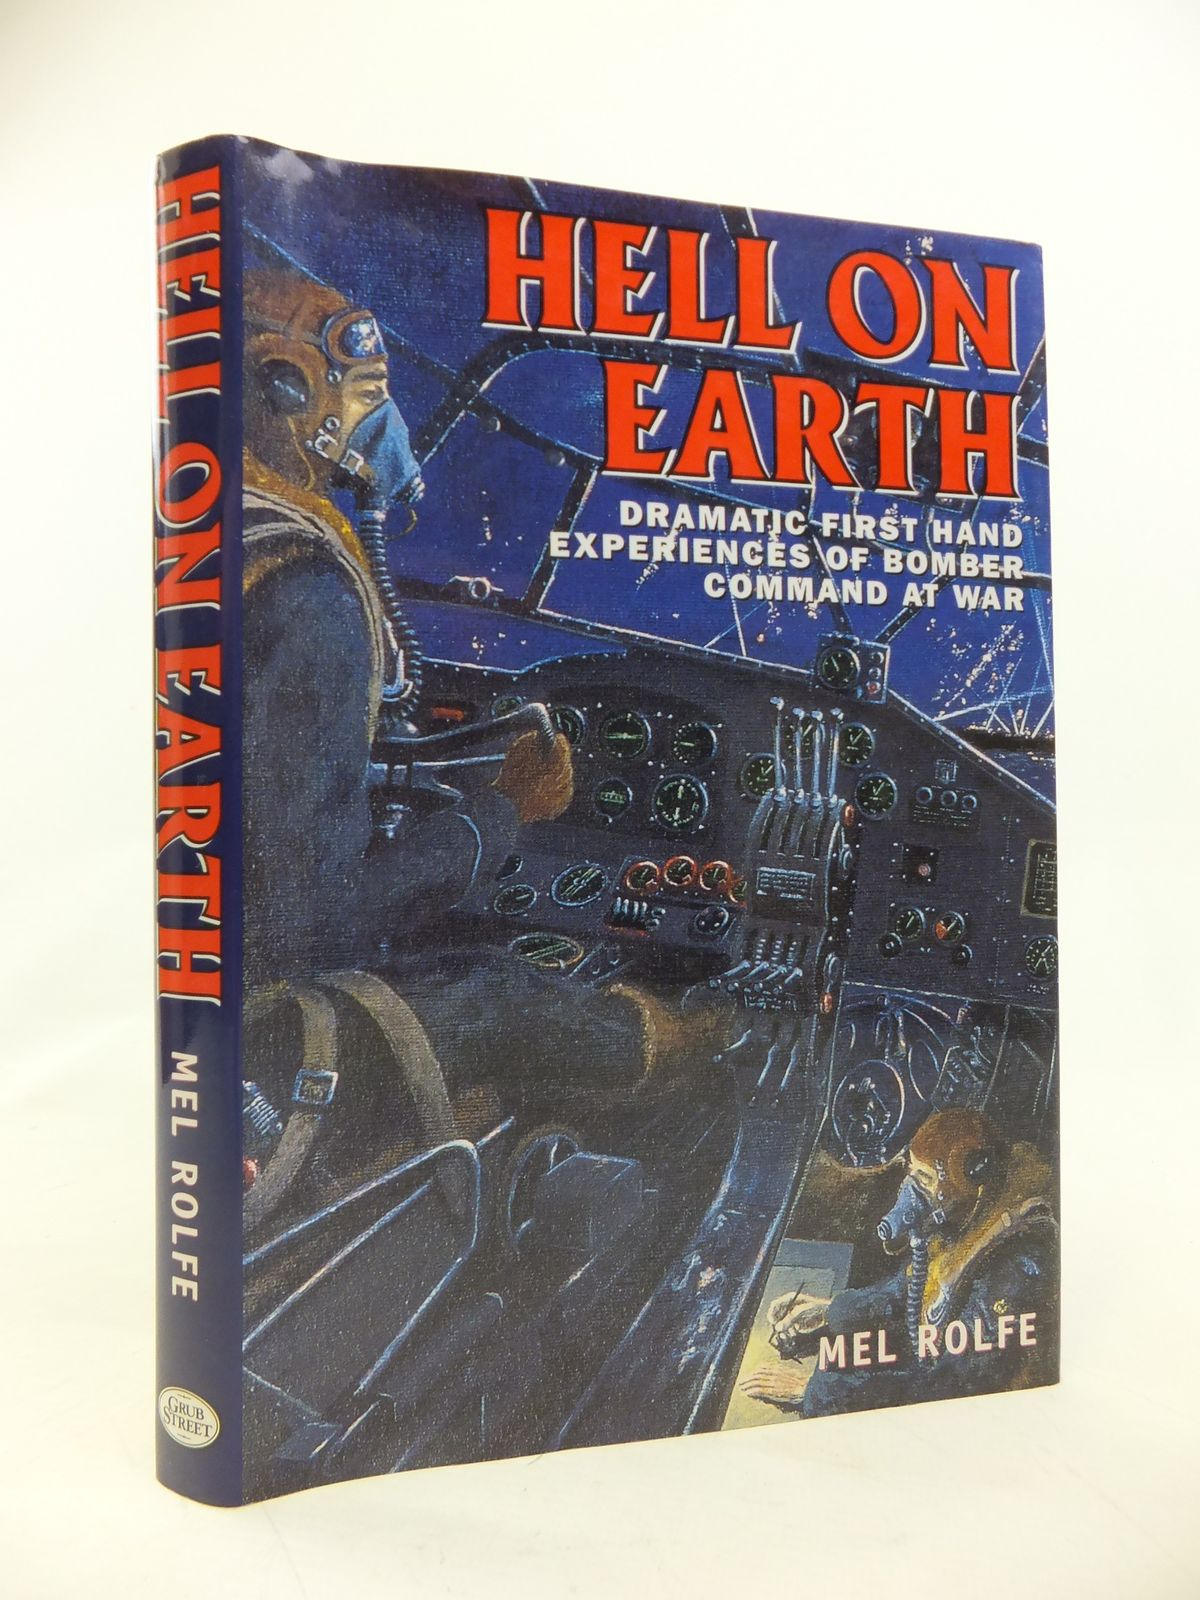 Photo of HELL ON EARTH DRAMATIC FIRST HAND EXPERIENCES OF BOMBER COMMAND AT WAR written by Rolfe, Mel published by Grub Street (STOCK CODE: 1810398)  for sale by Stella & Rose's Books